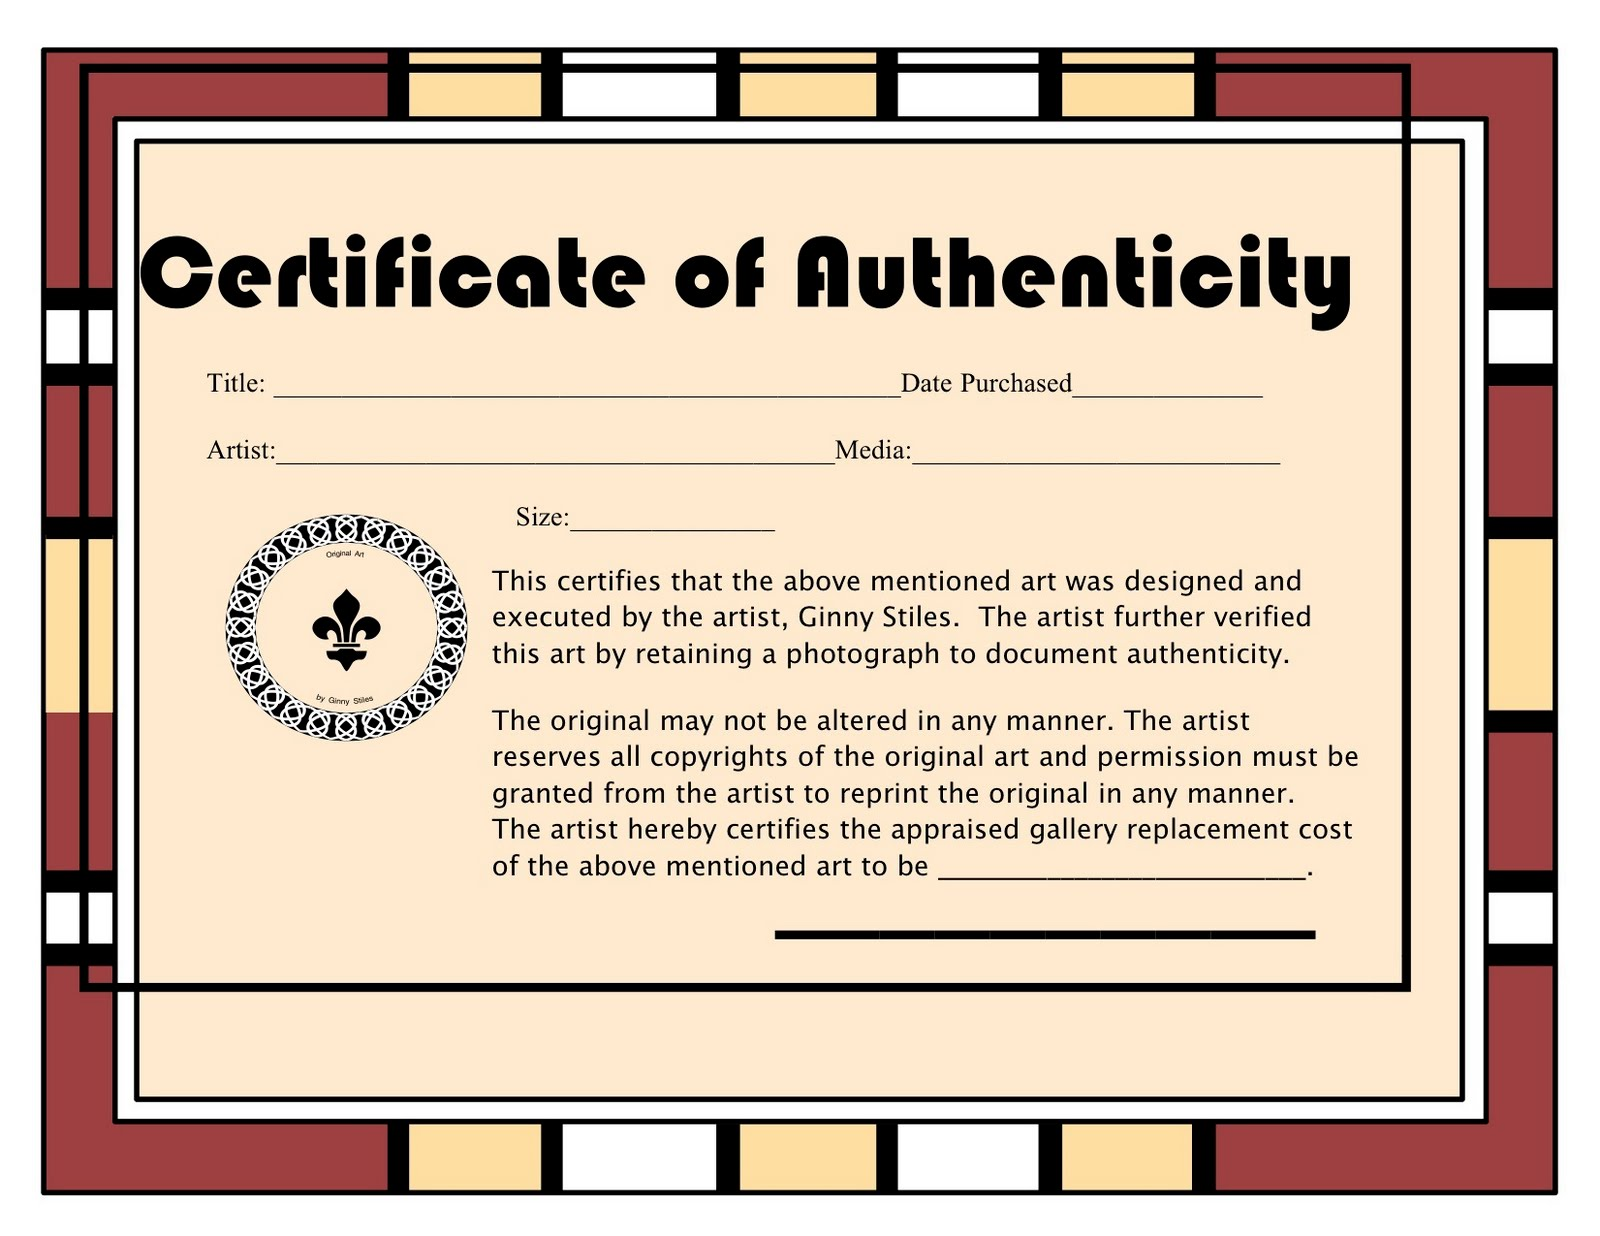 An artist labyrinth ginny stiles czt may 2010 for Certificate of authenticity autograph template